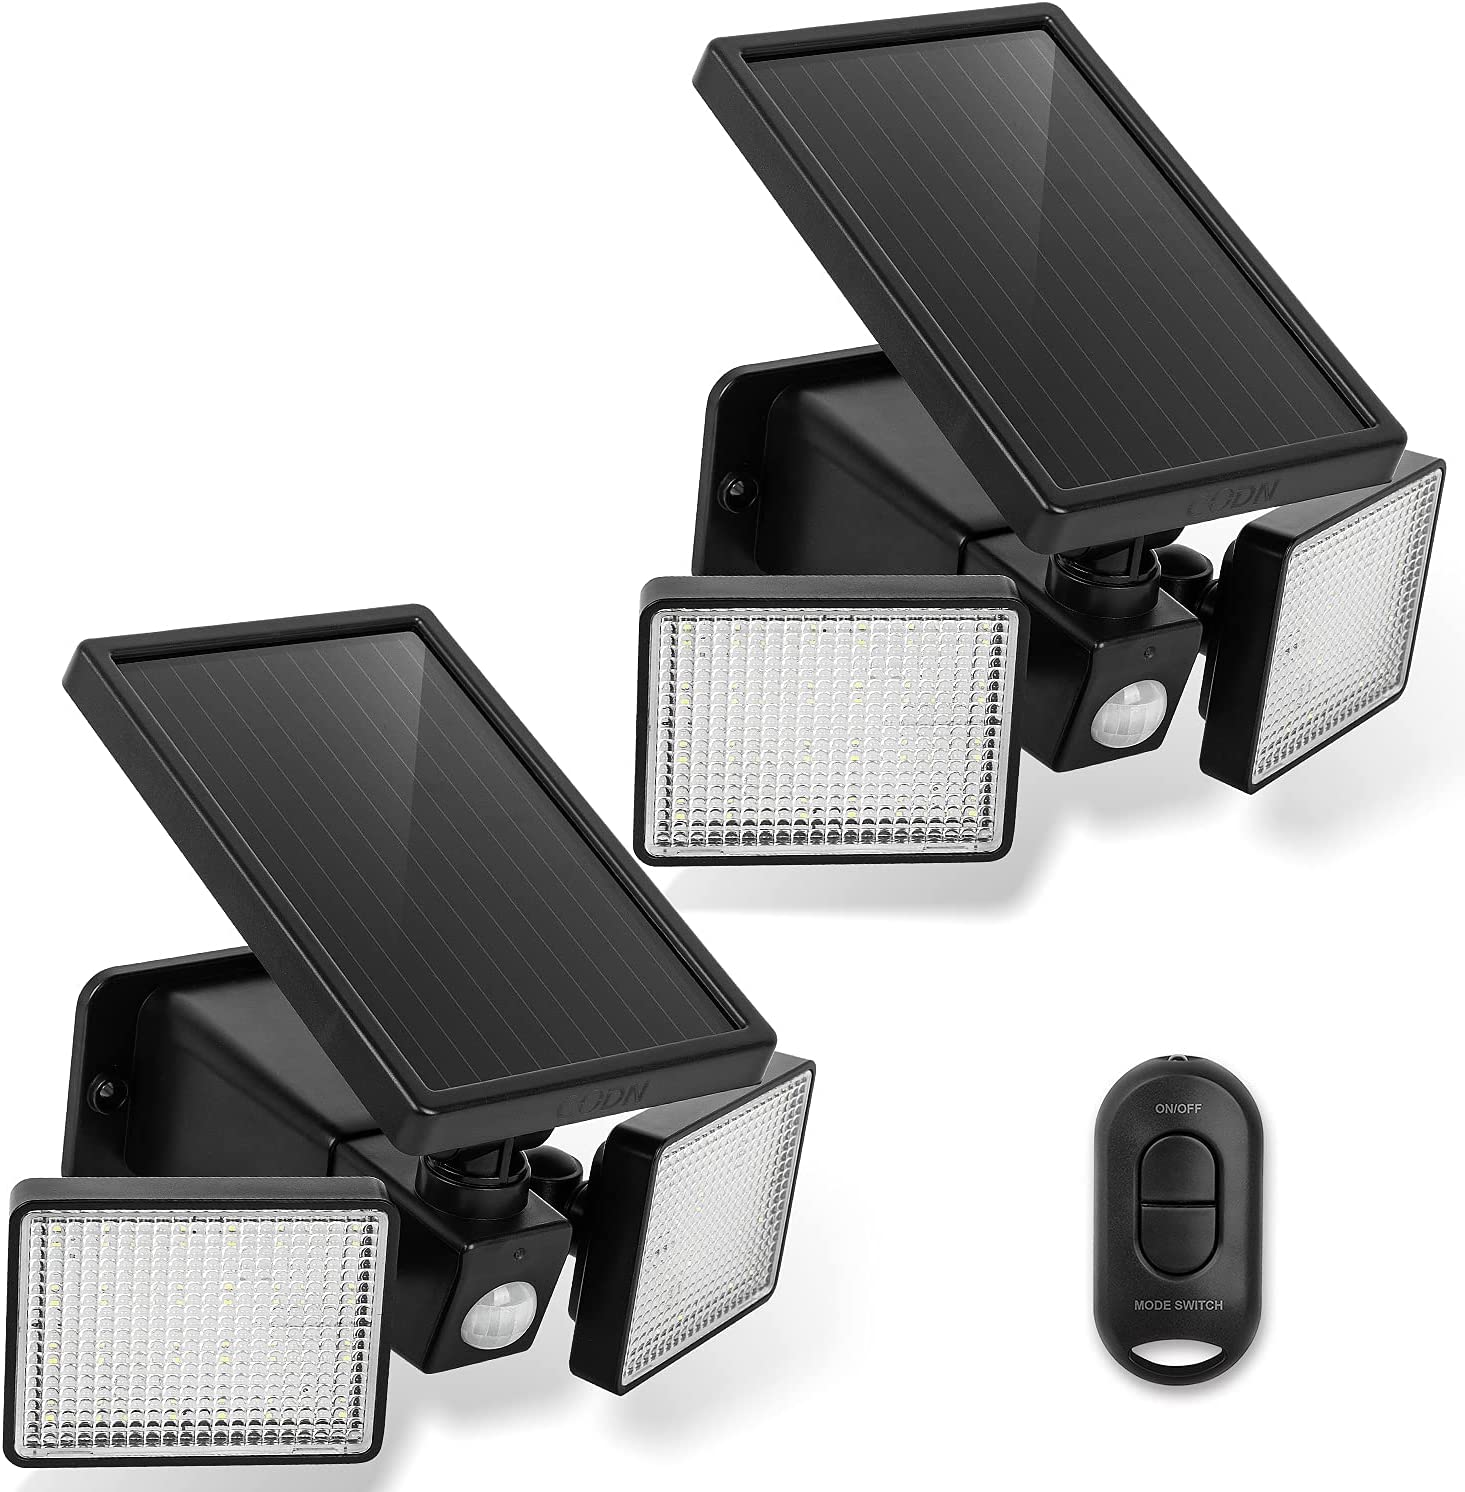 Codn 100-LED 2-Pack Wireless Outdoor Solar Motion Lights  $24.99 Coupon